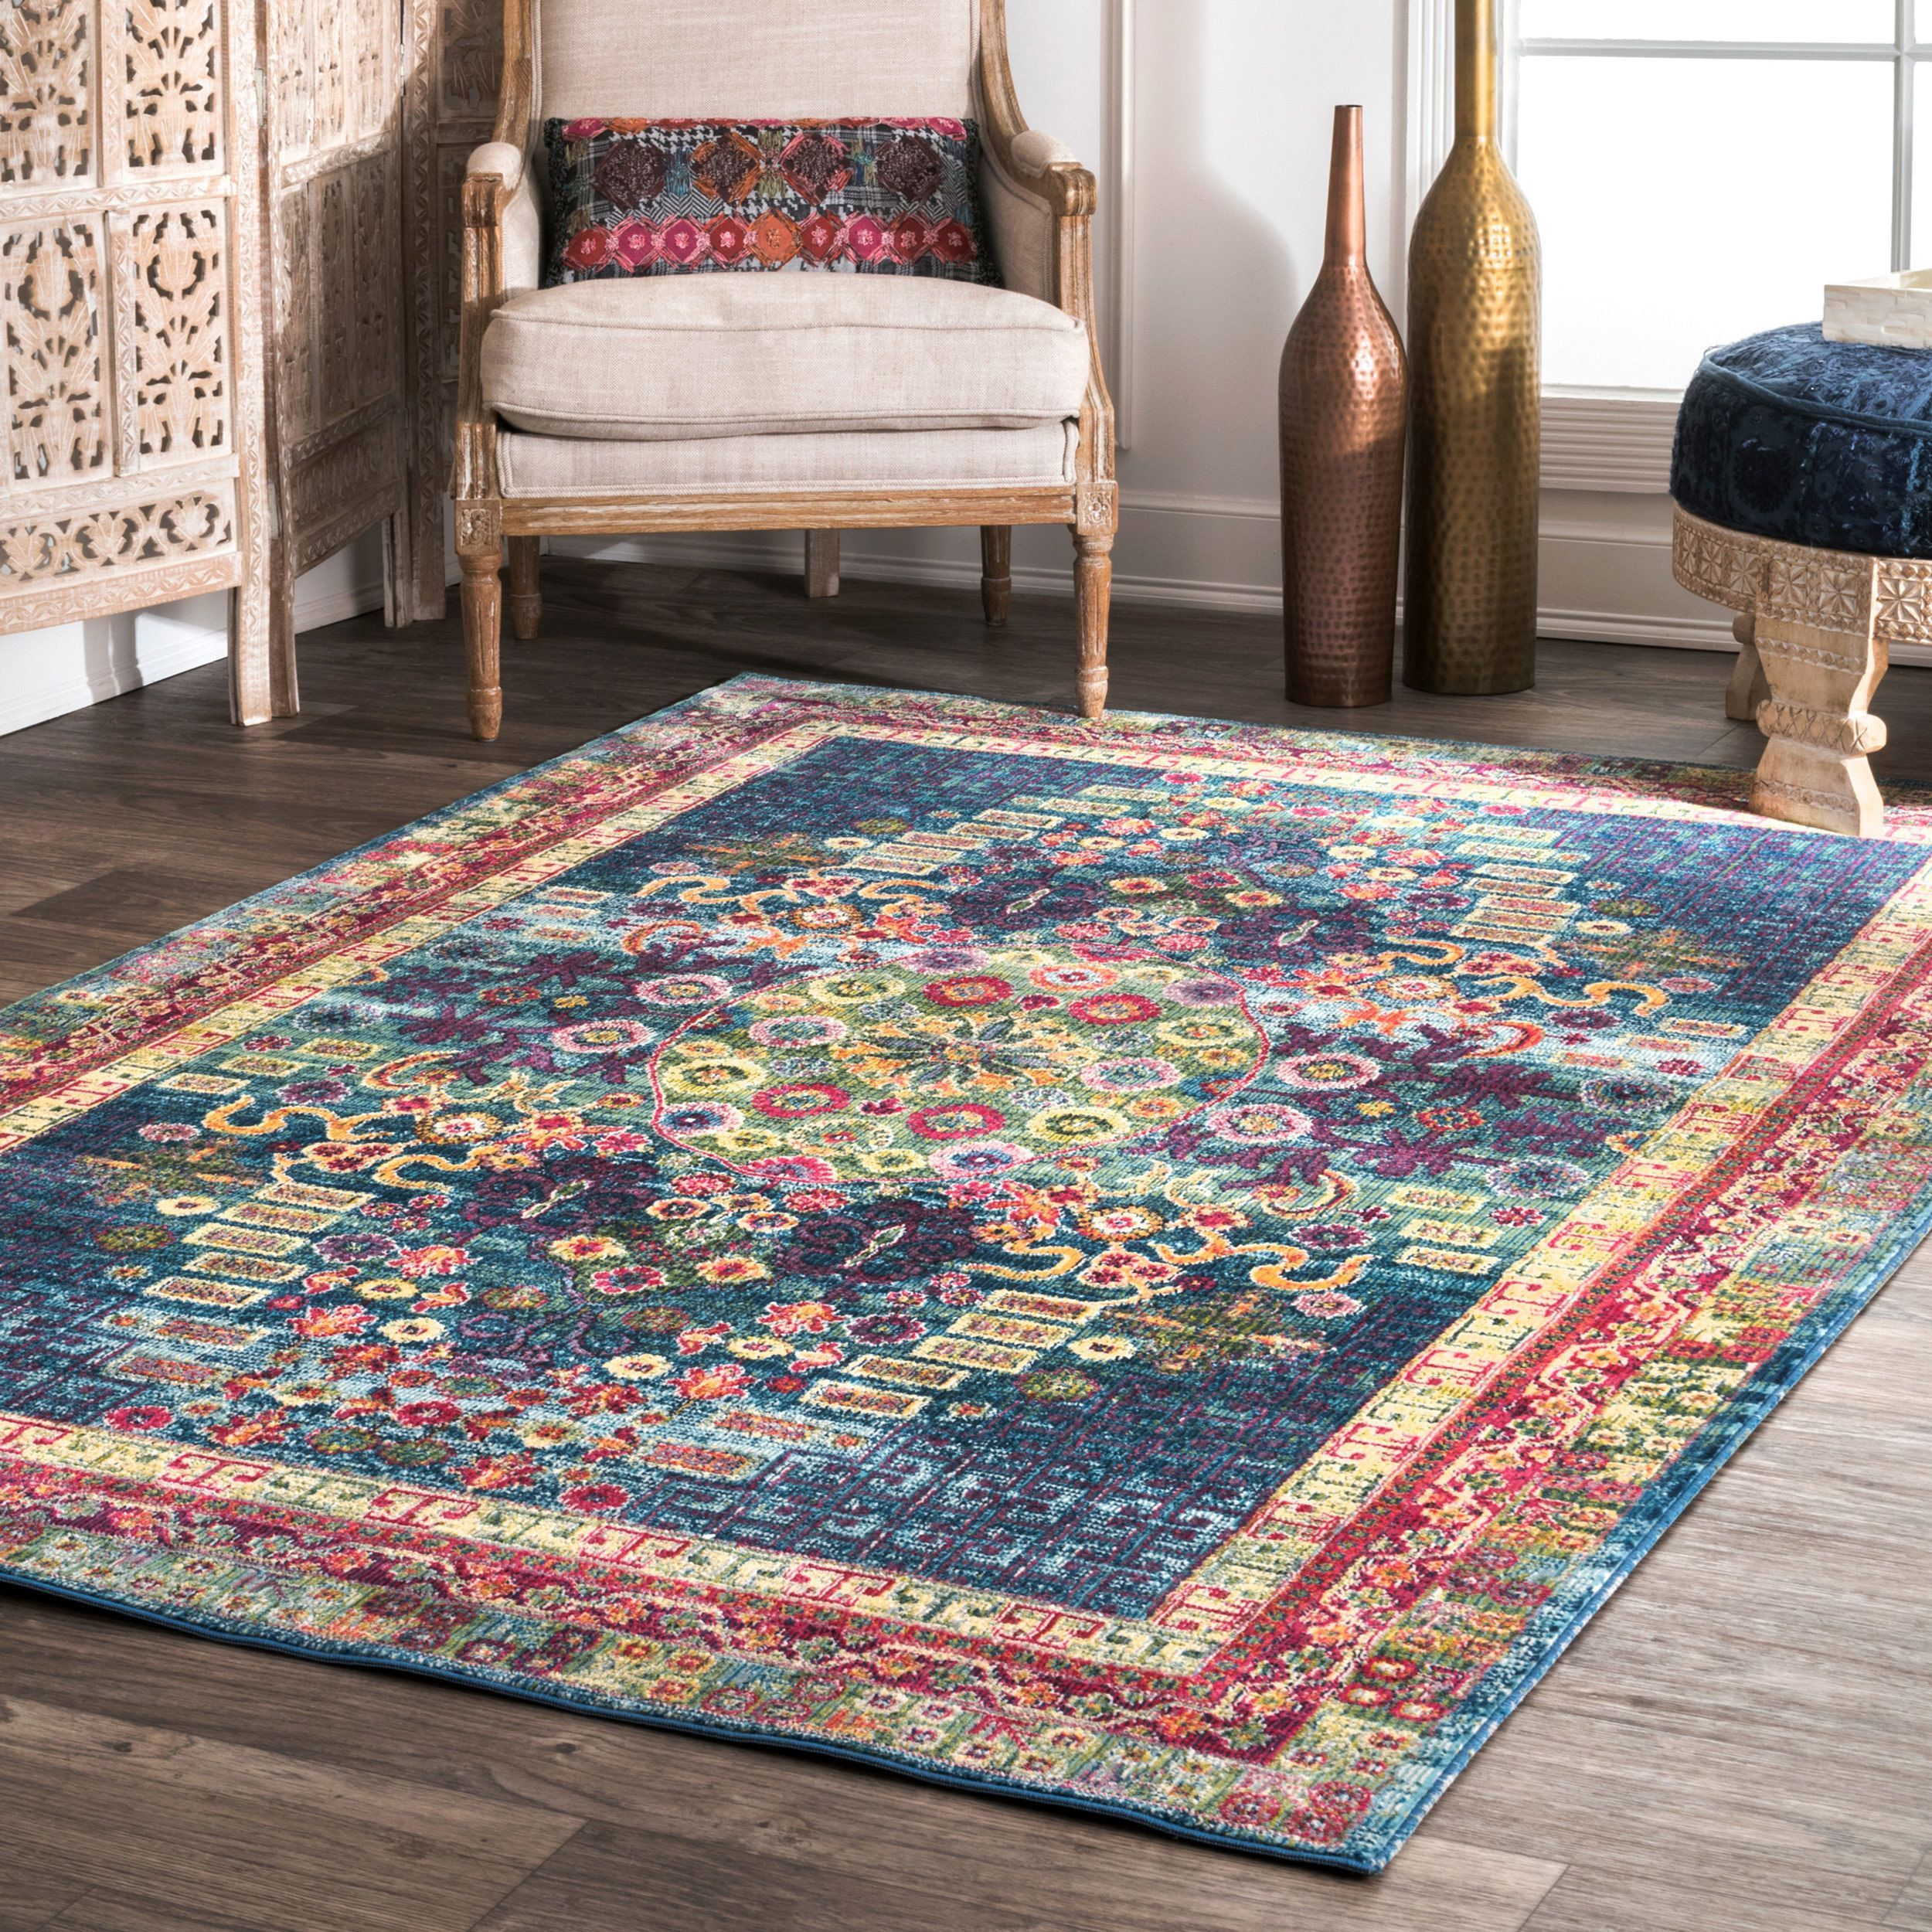 Nuloom Blue Traditional Vibrant Abstract Floral Tiles Area Rug With Images Vintage Area Rugs Area Rugs Traditional Area Rugs